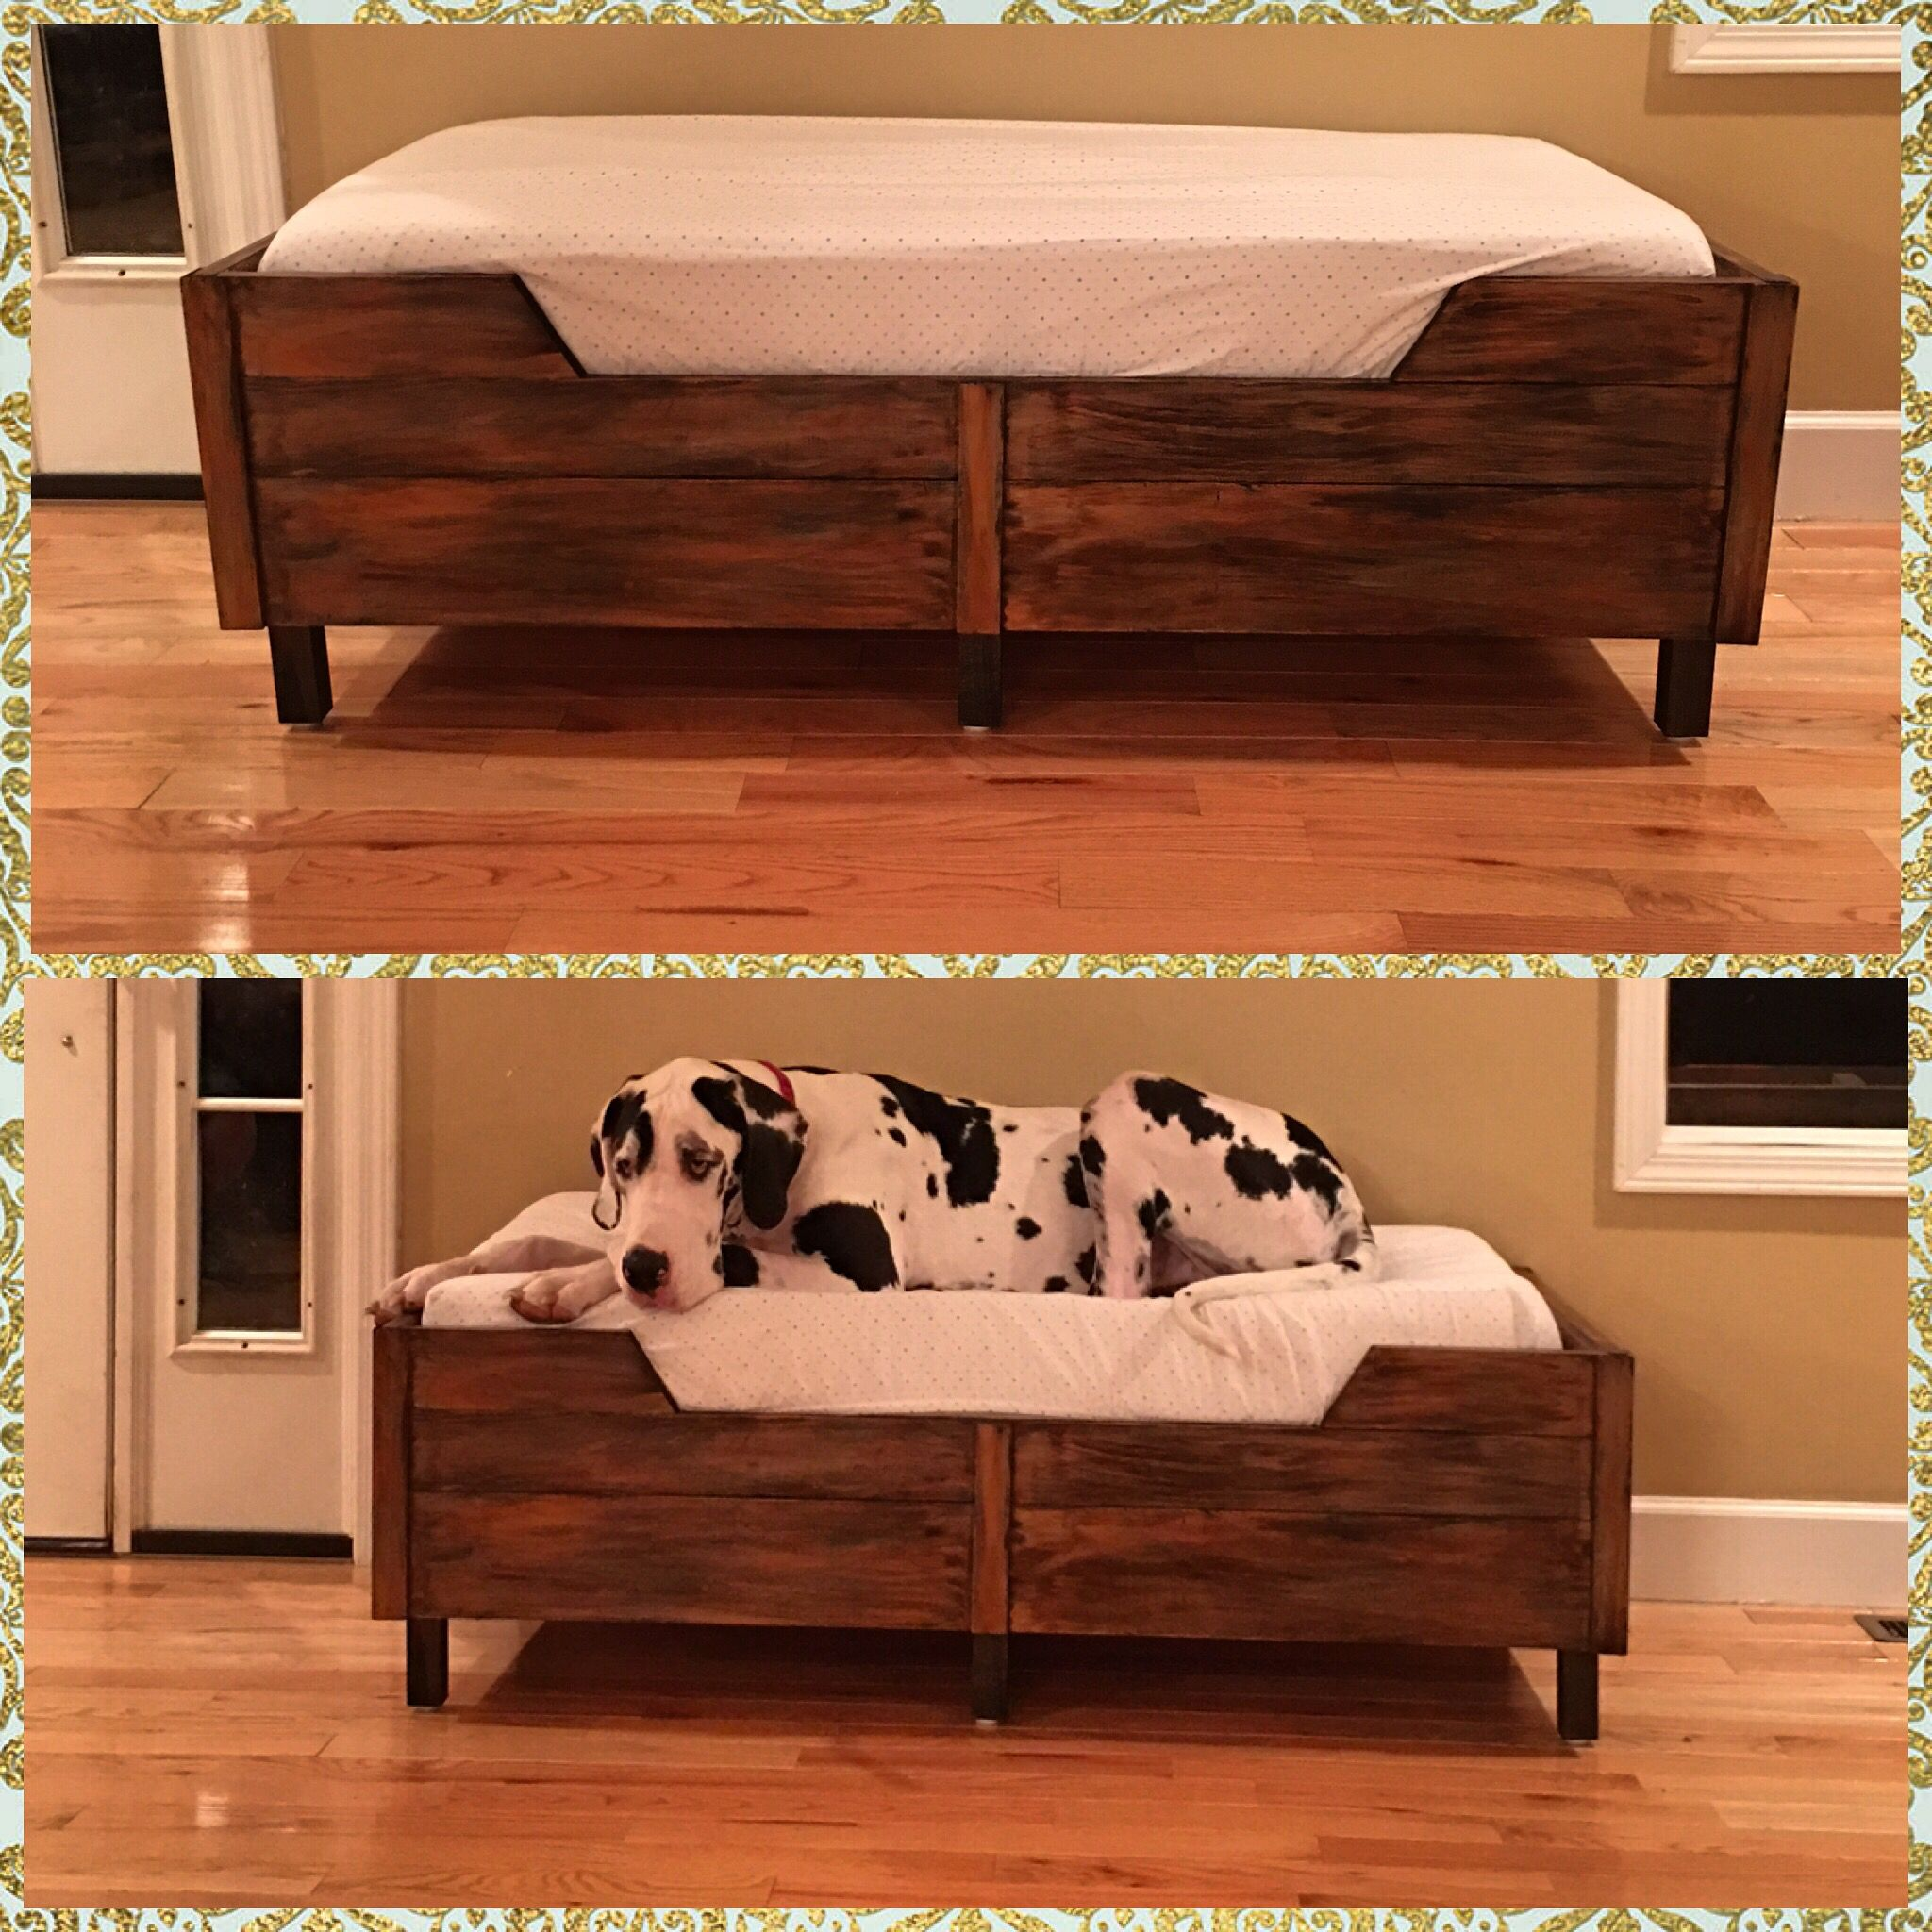 Our Girl Luci On Her Bed We Made For Her Love How The Stain